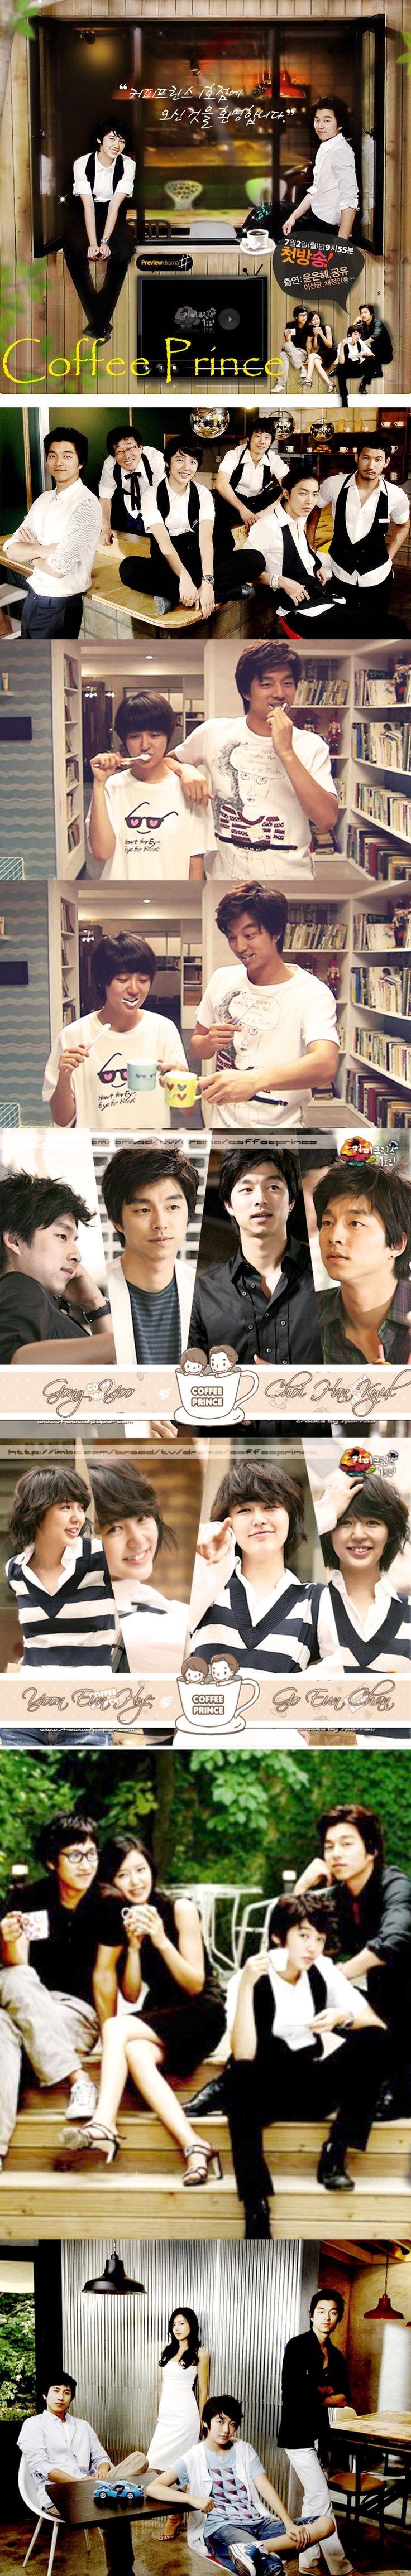 Coffee Prince (The 1st Shop of Coffee Prince)  2007 K Drama - 17 episodes - Gong Yoo / Yoon Eun Hye / Lee Sun Gyun / Chae Jung Ahn